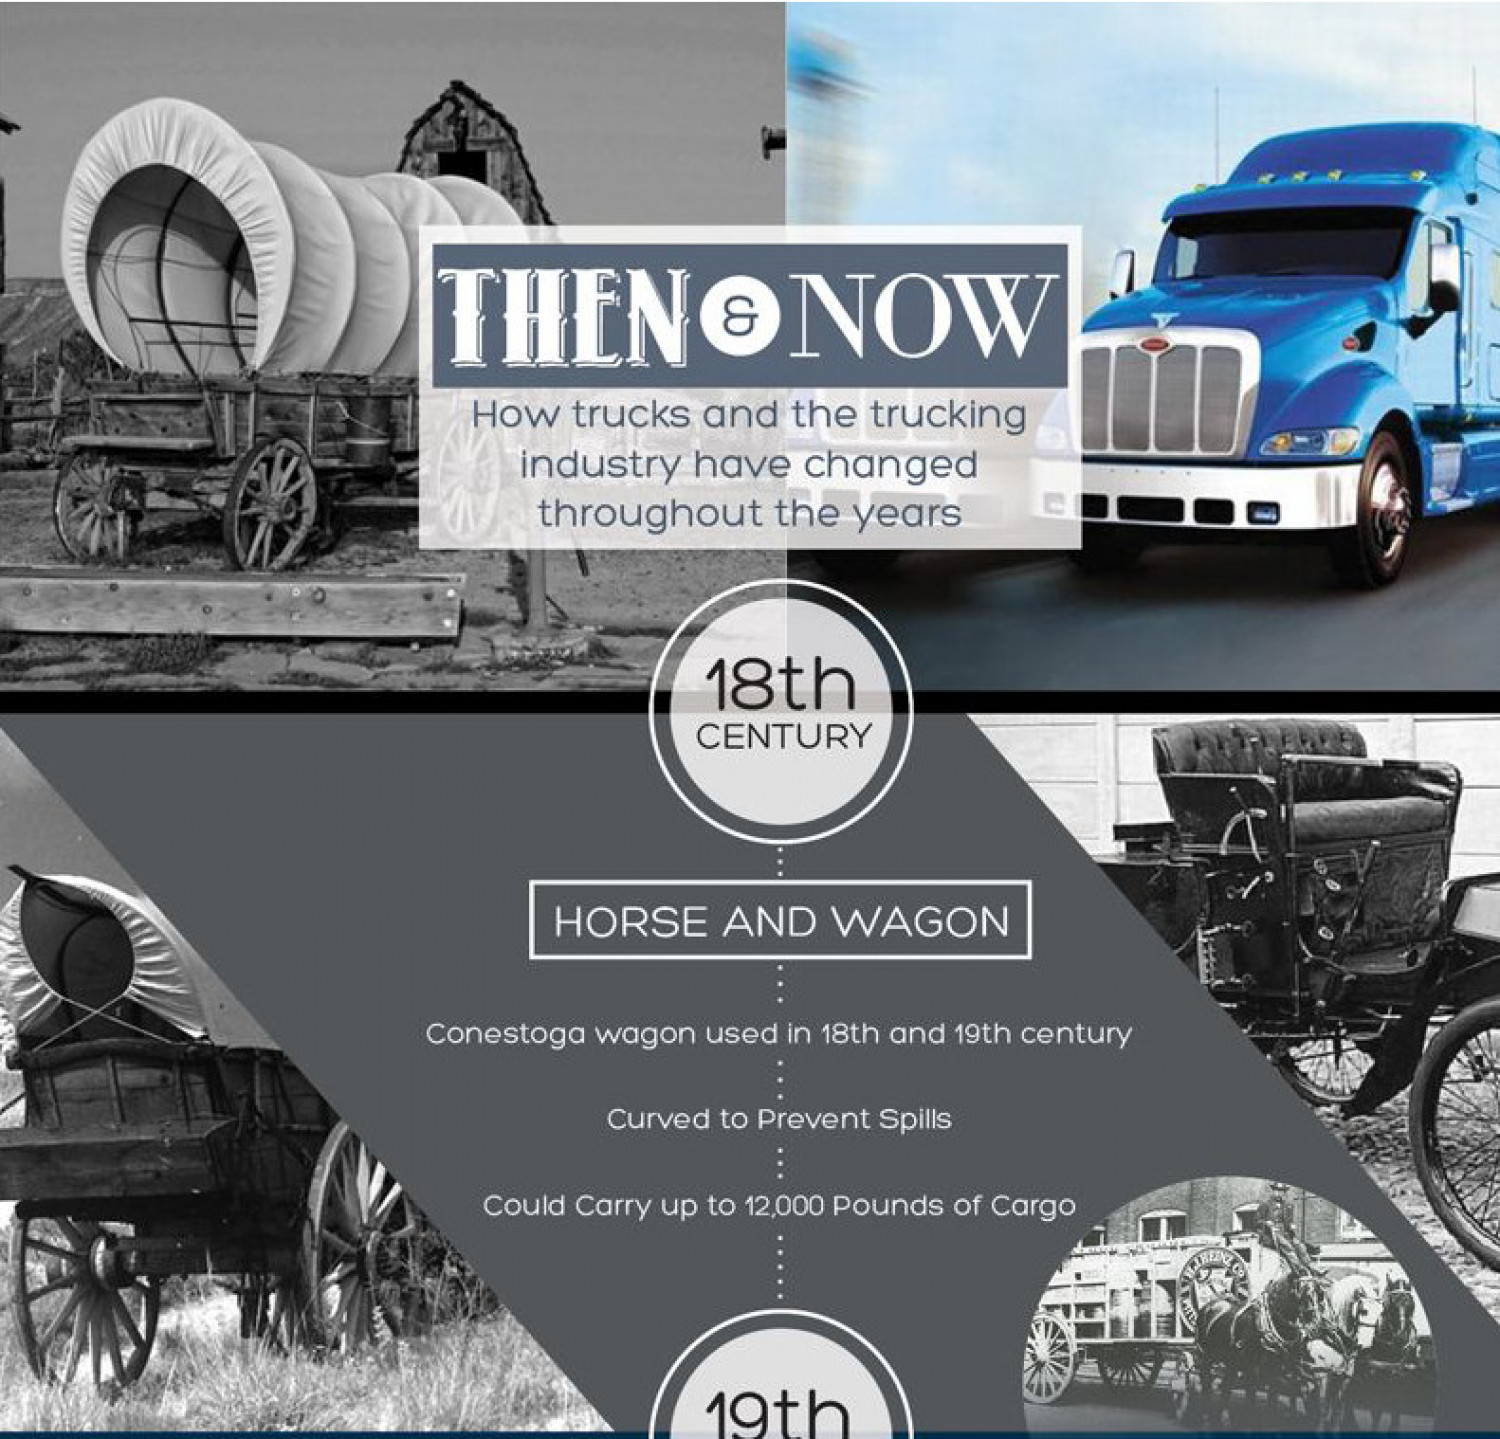 Then & Now: How Trucks and the Trucking Industry Have Changed Throughout the Years Infographic